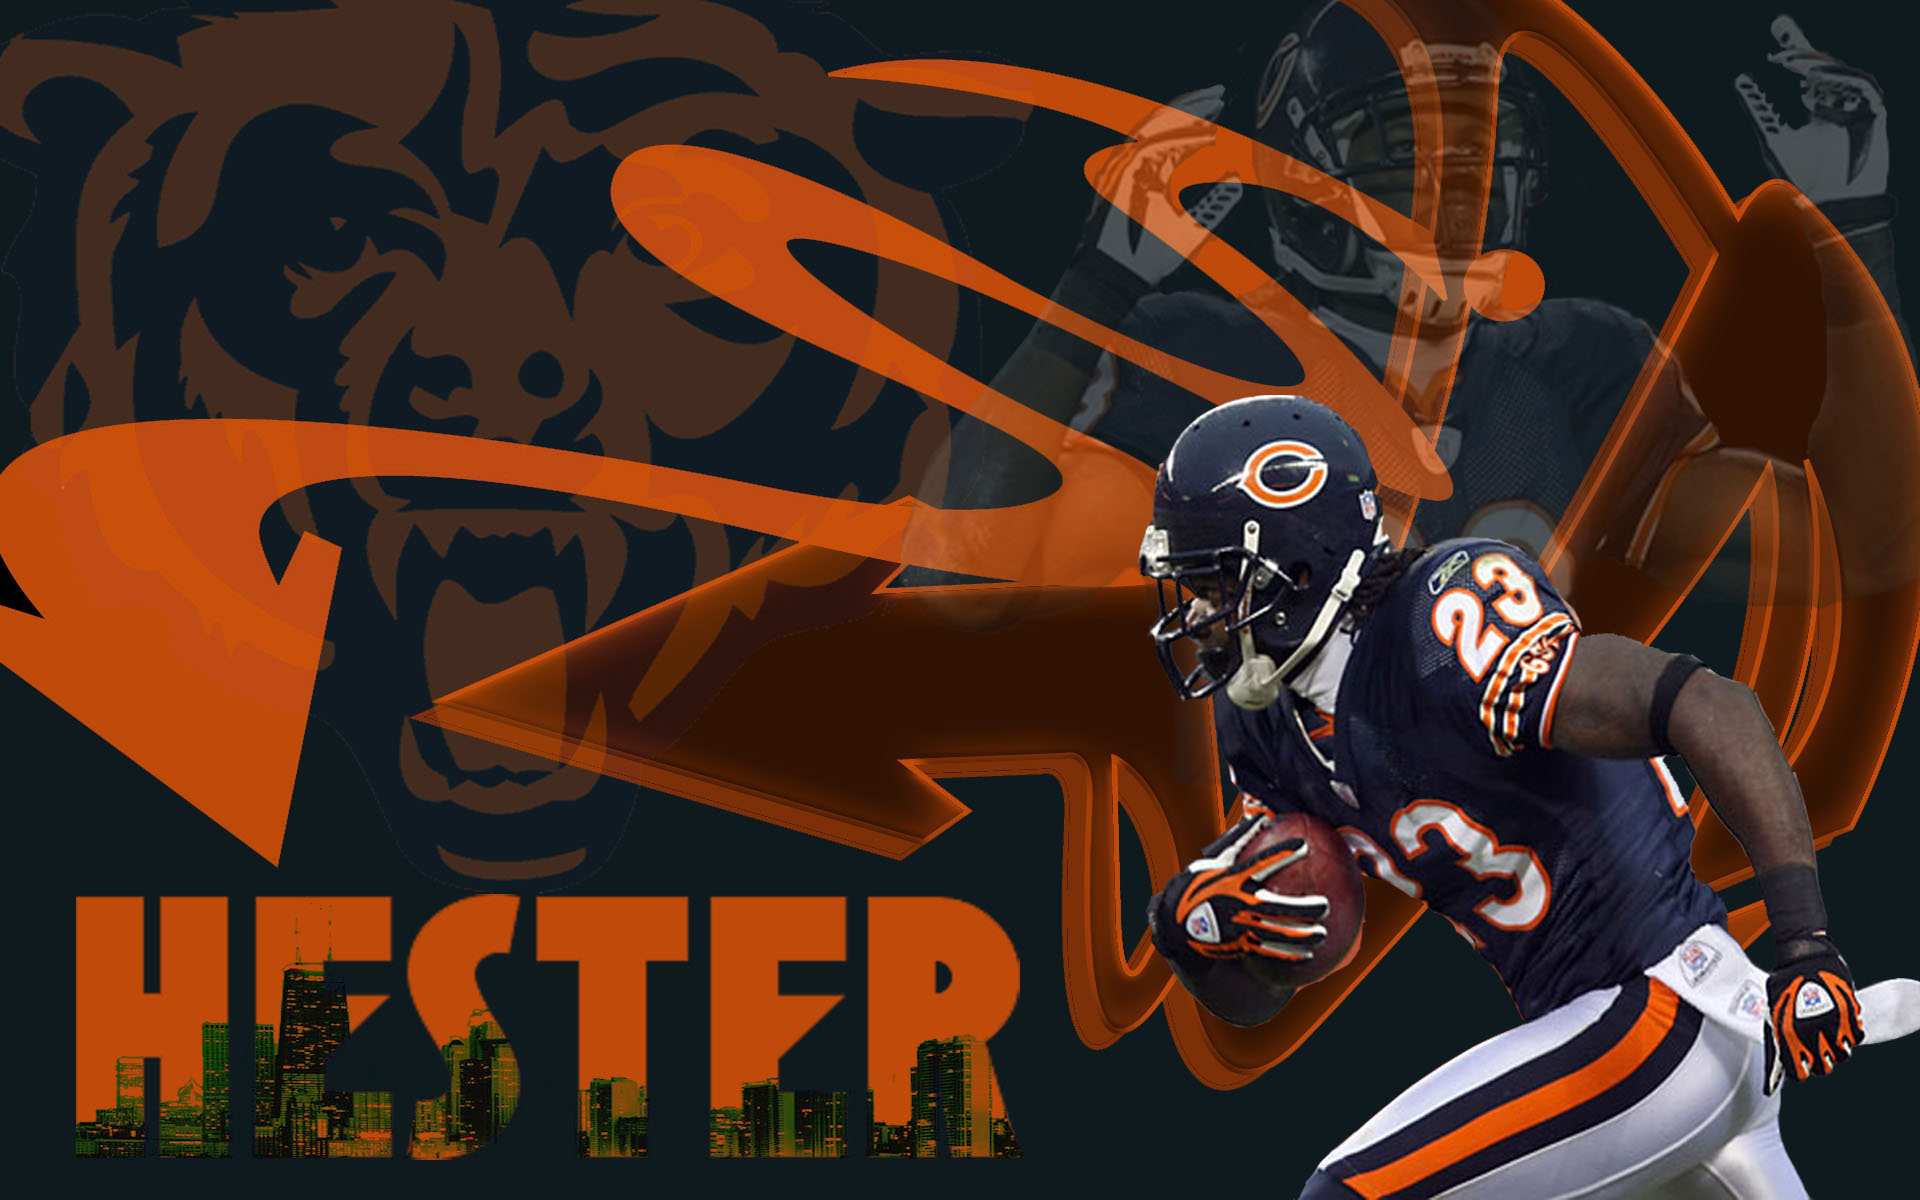 Chicago Bears wallpaper HD wallpaper 1920x1200